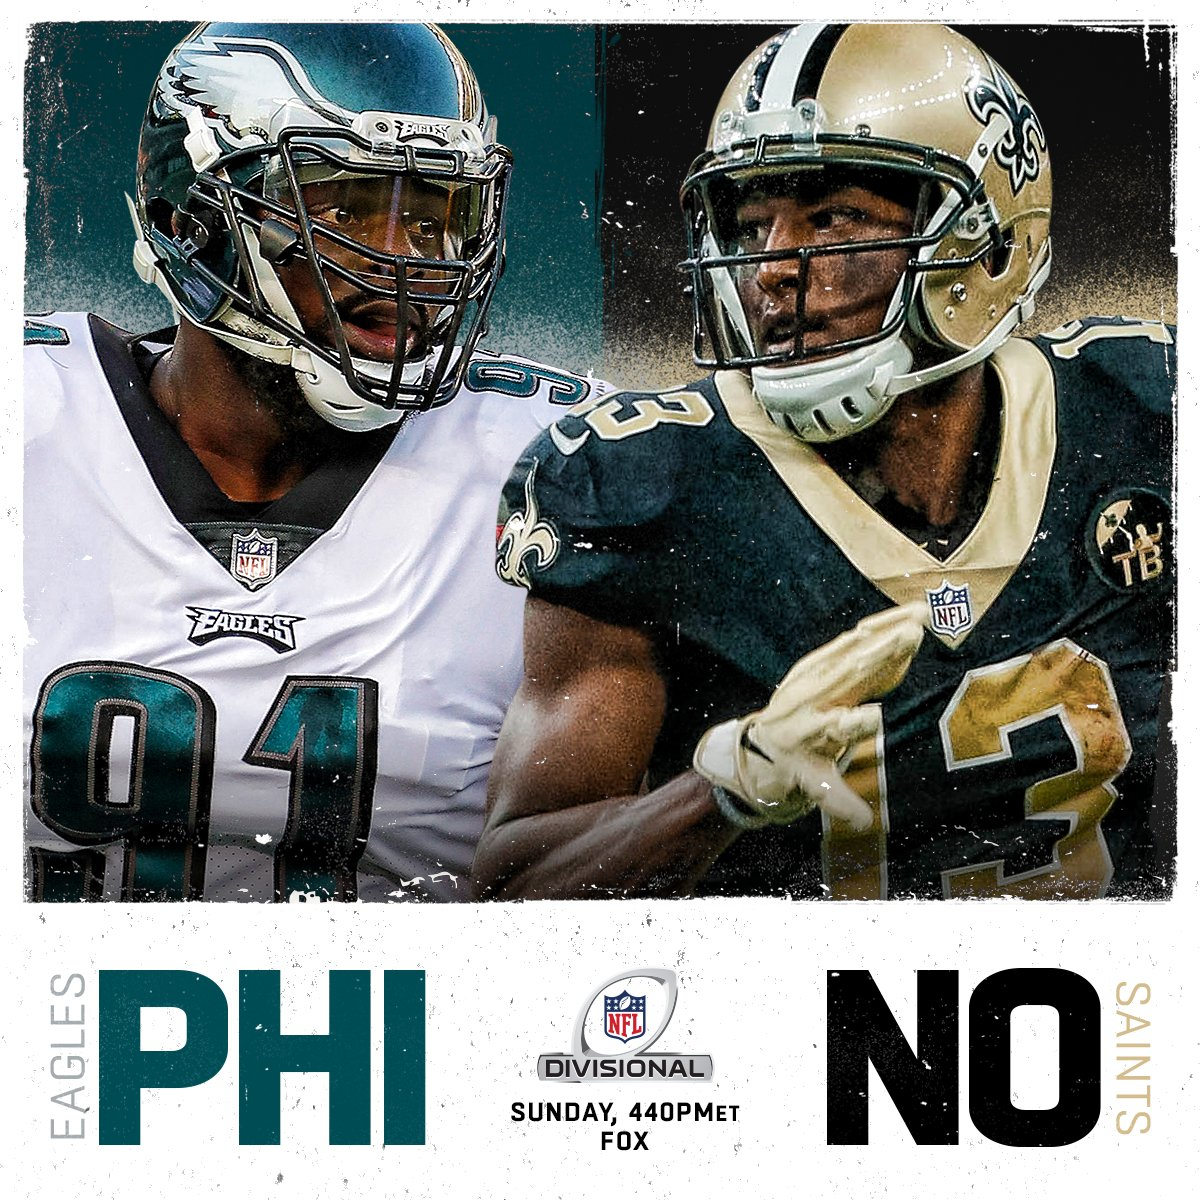 Who's moving on: @Eagles or @Saints? #NFLPlayoffs  ��: #PHIvsNO. Sunday on FOX (4:40pm ET)! https://t.co/uGsyAtWHs3